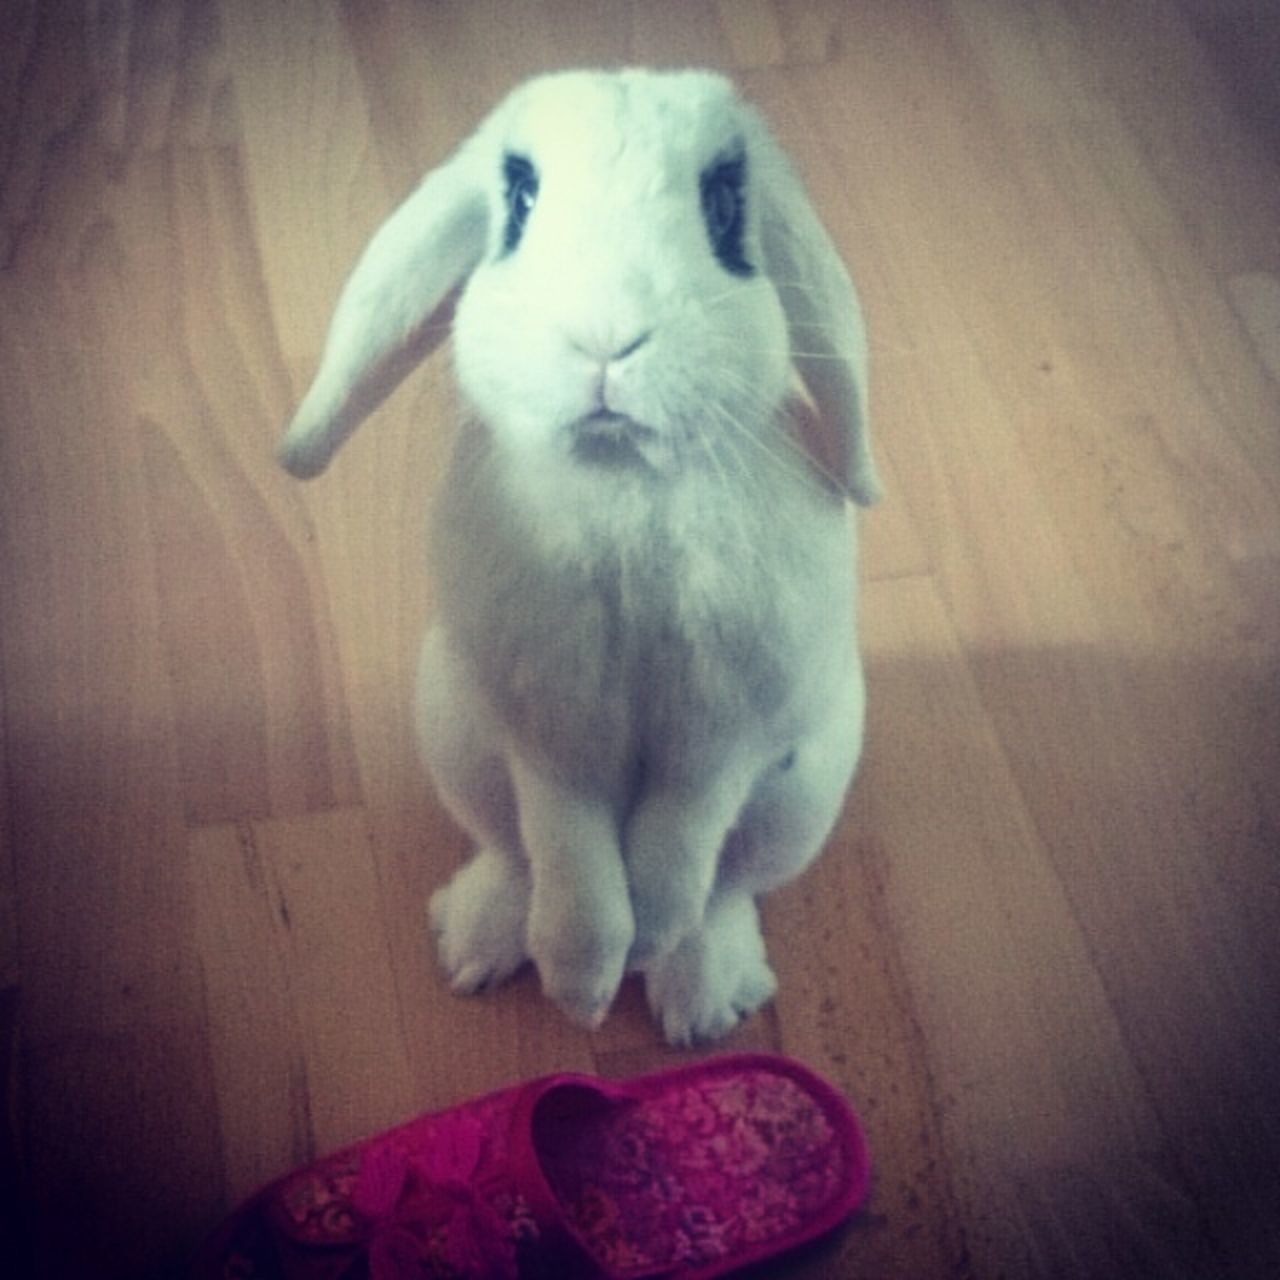 One Animal Animal Themes Indoors  Pets Domestic Animals Animal Looking At Camera Whisker No People Looking At Home Wooden Floor Animal Behavior Flooring Bunny  Bunny Love Bunny Ears  Cute Pets FLUFFY BUNNY